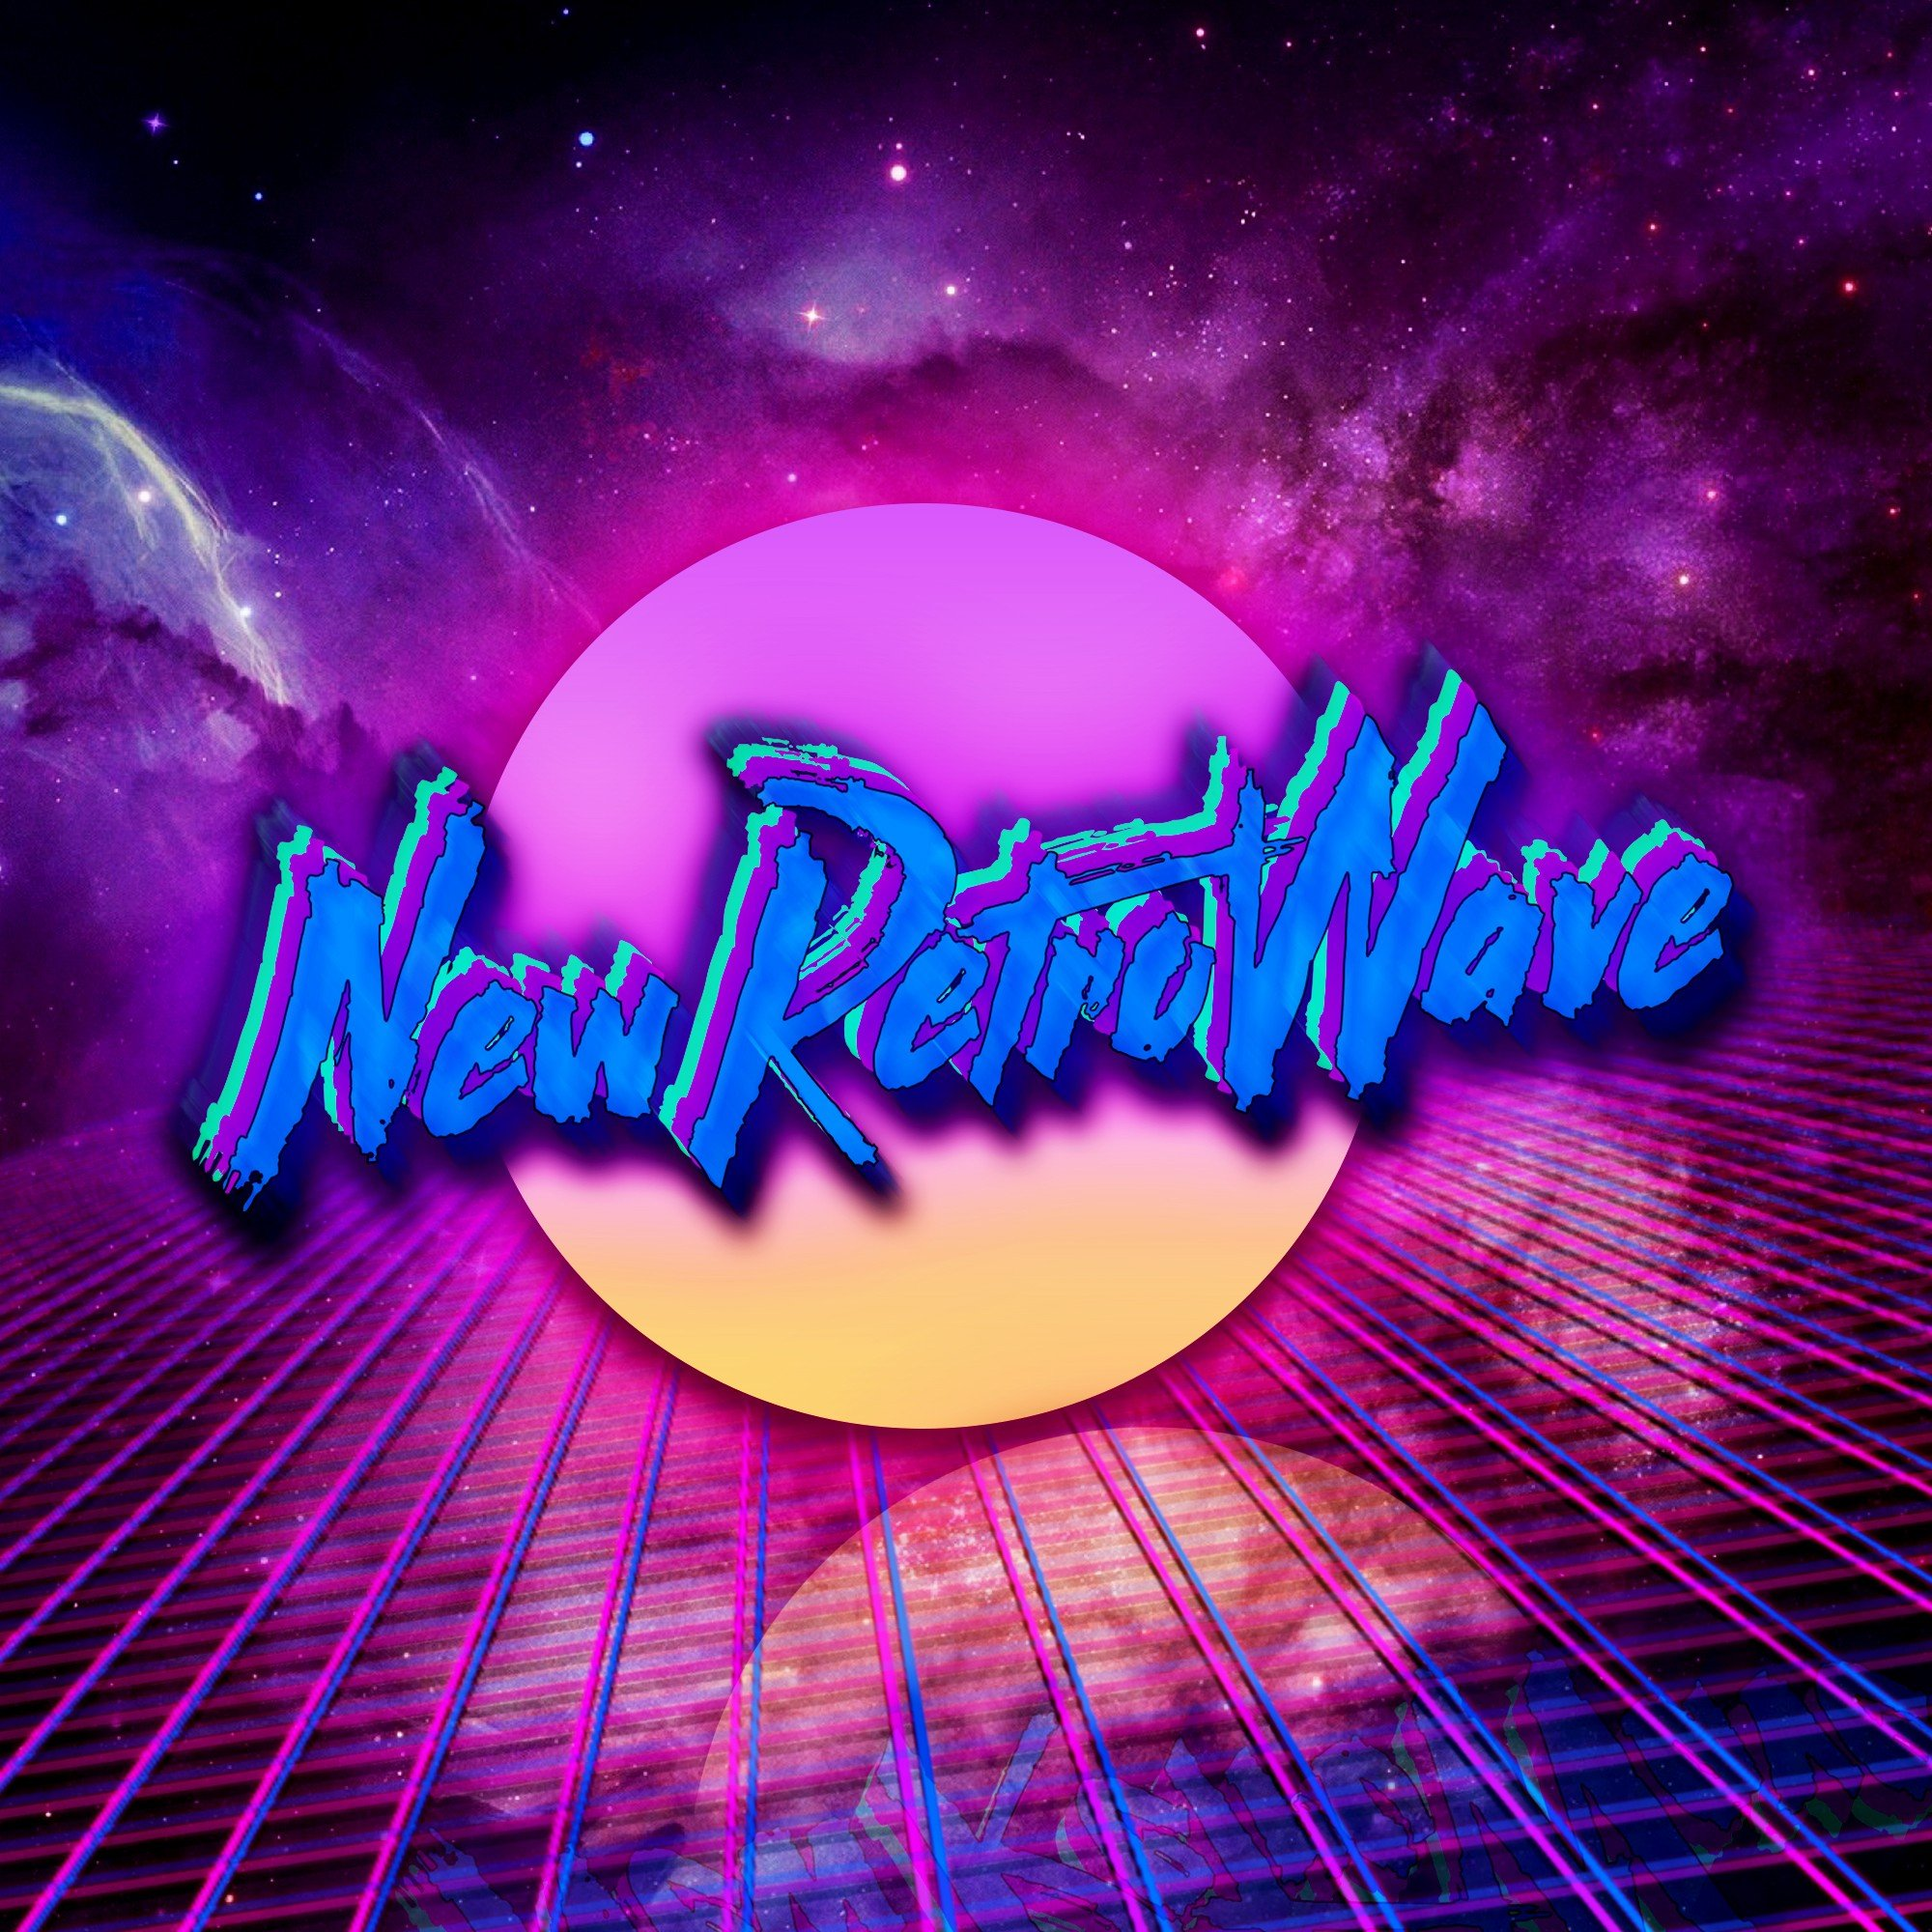 New Retro Wave Neon Space 1980s Synthwave Digital Art HD Wallpapers Download Free Images Wallpaper [1000image.com]